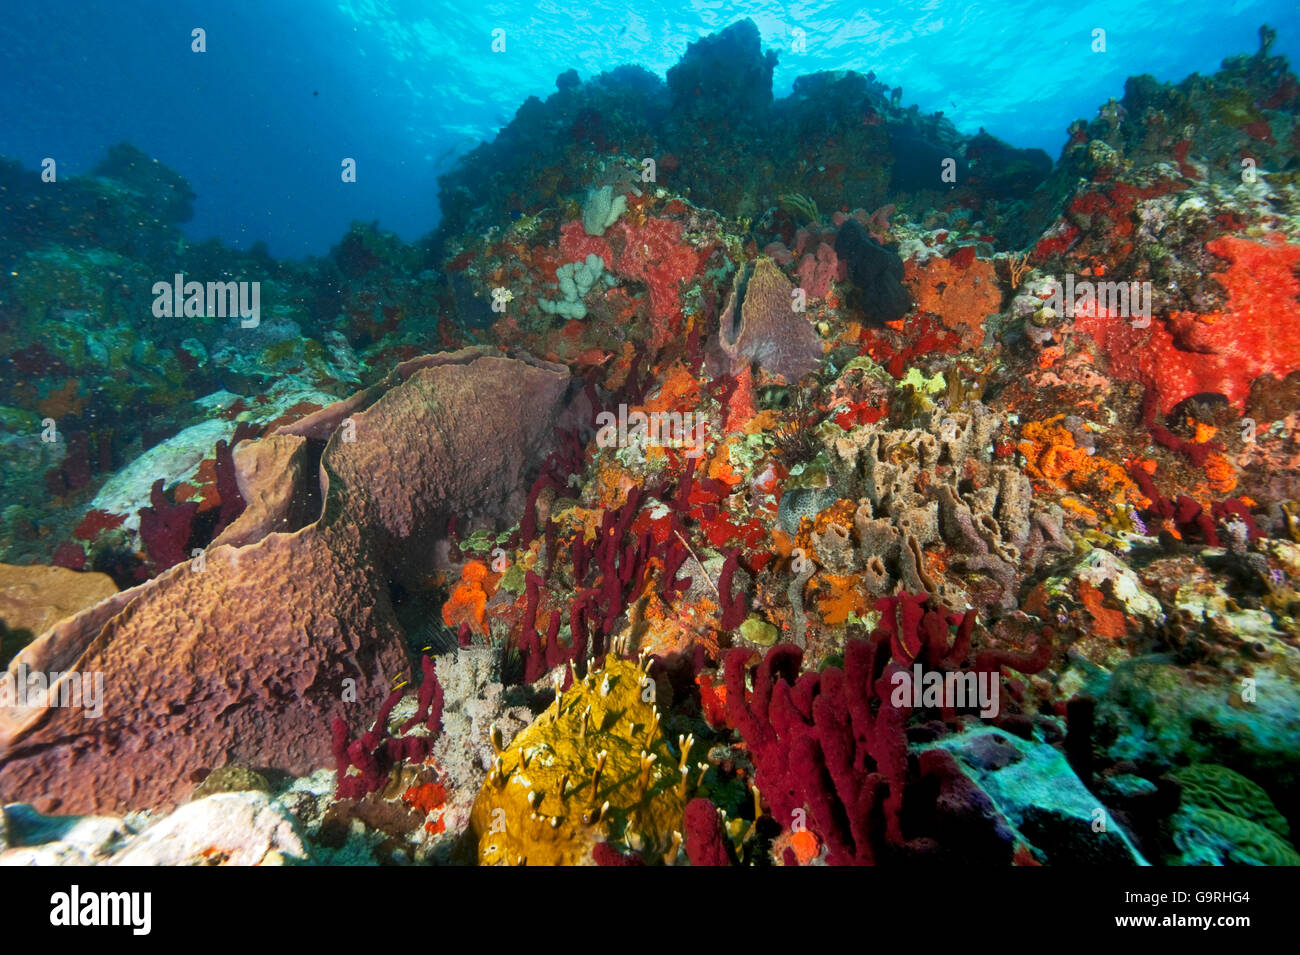 Coral reef, sponges, soft corals, Carriacou and Petite Martinique, Grenada / leeward islands - Stock Image